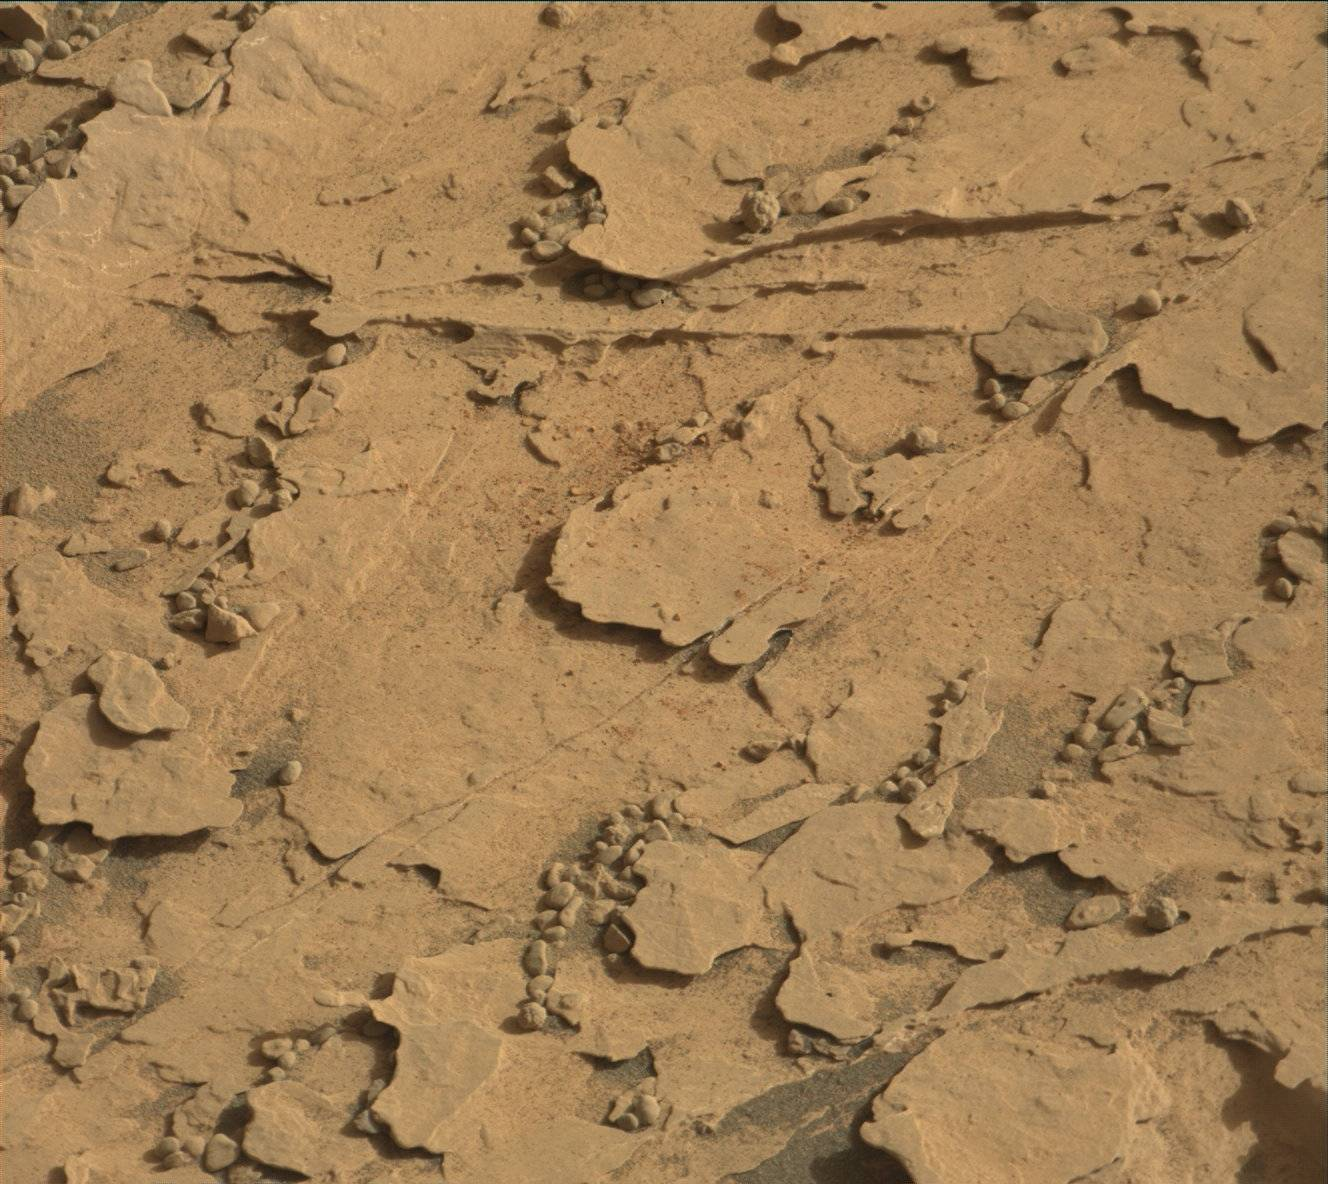 Sol 2063-2066: Sample drop-off testing